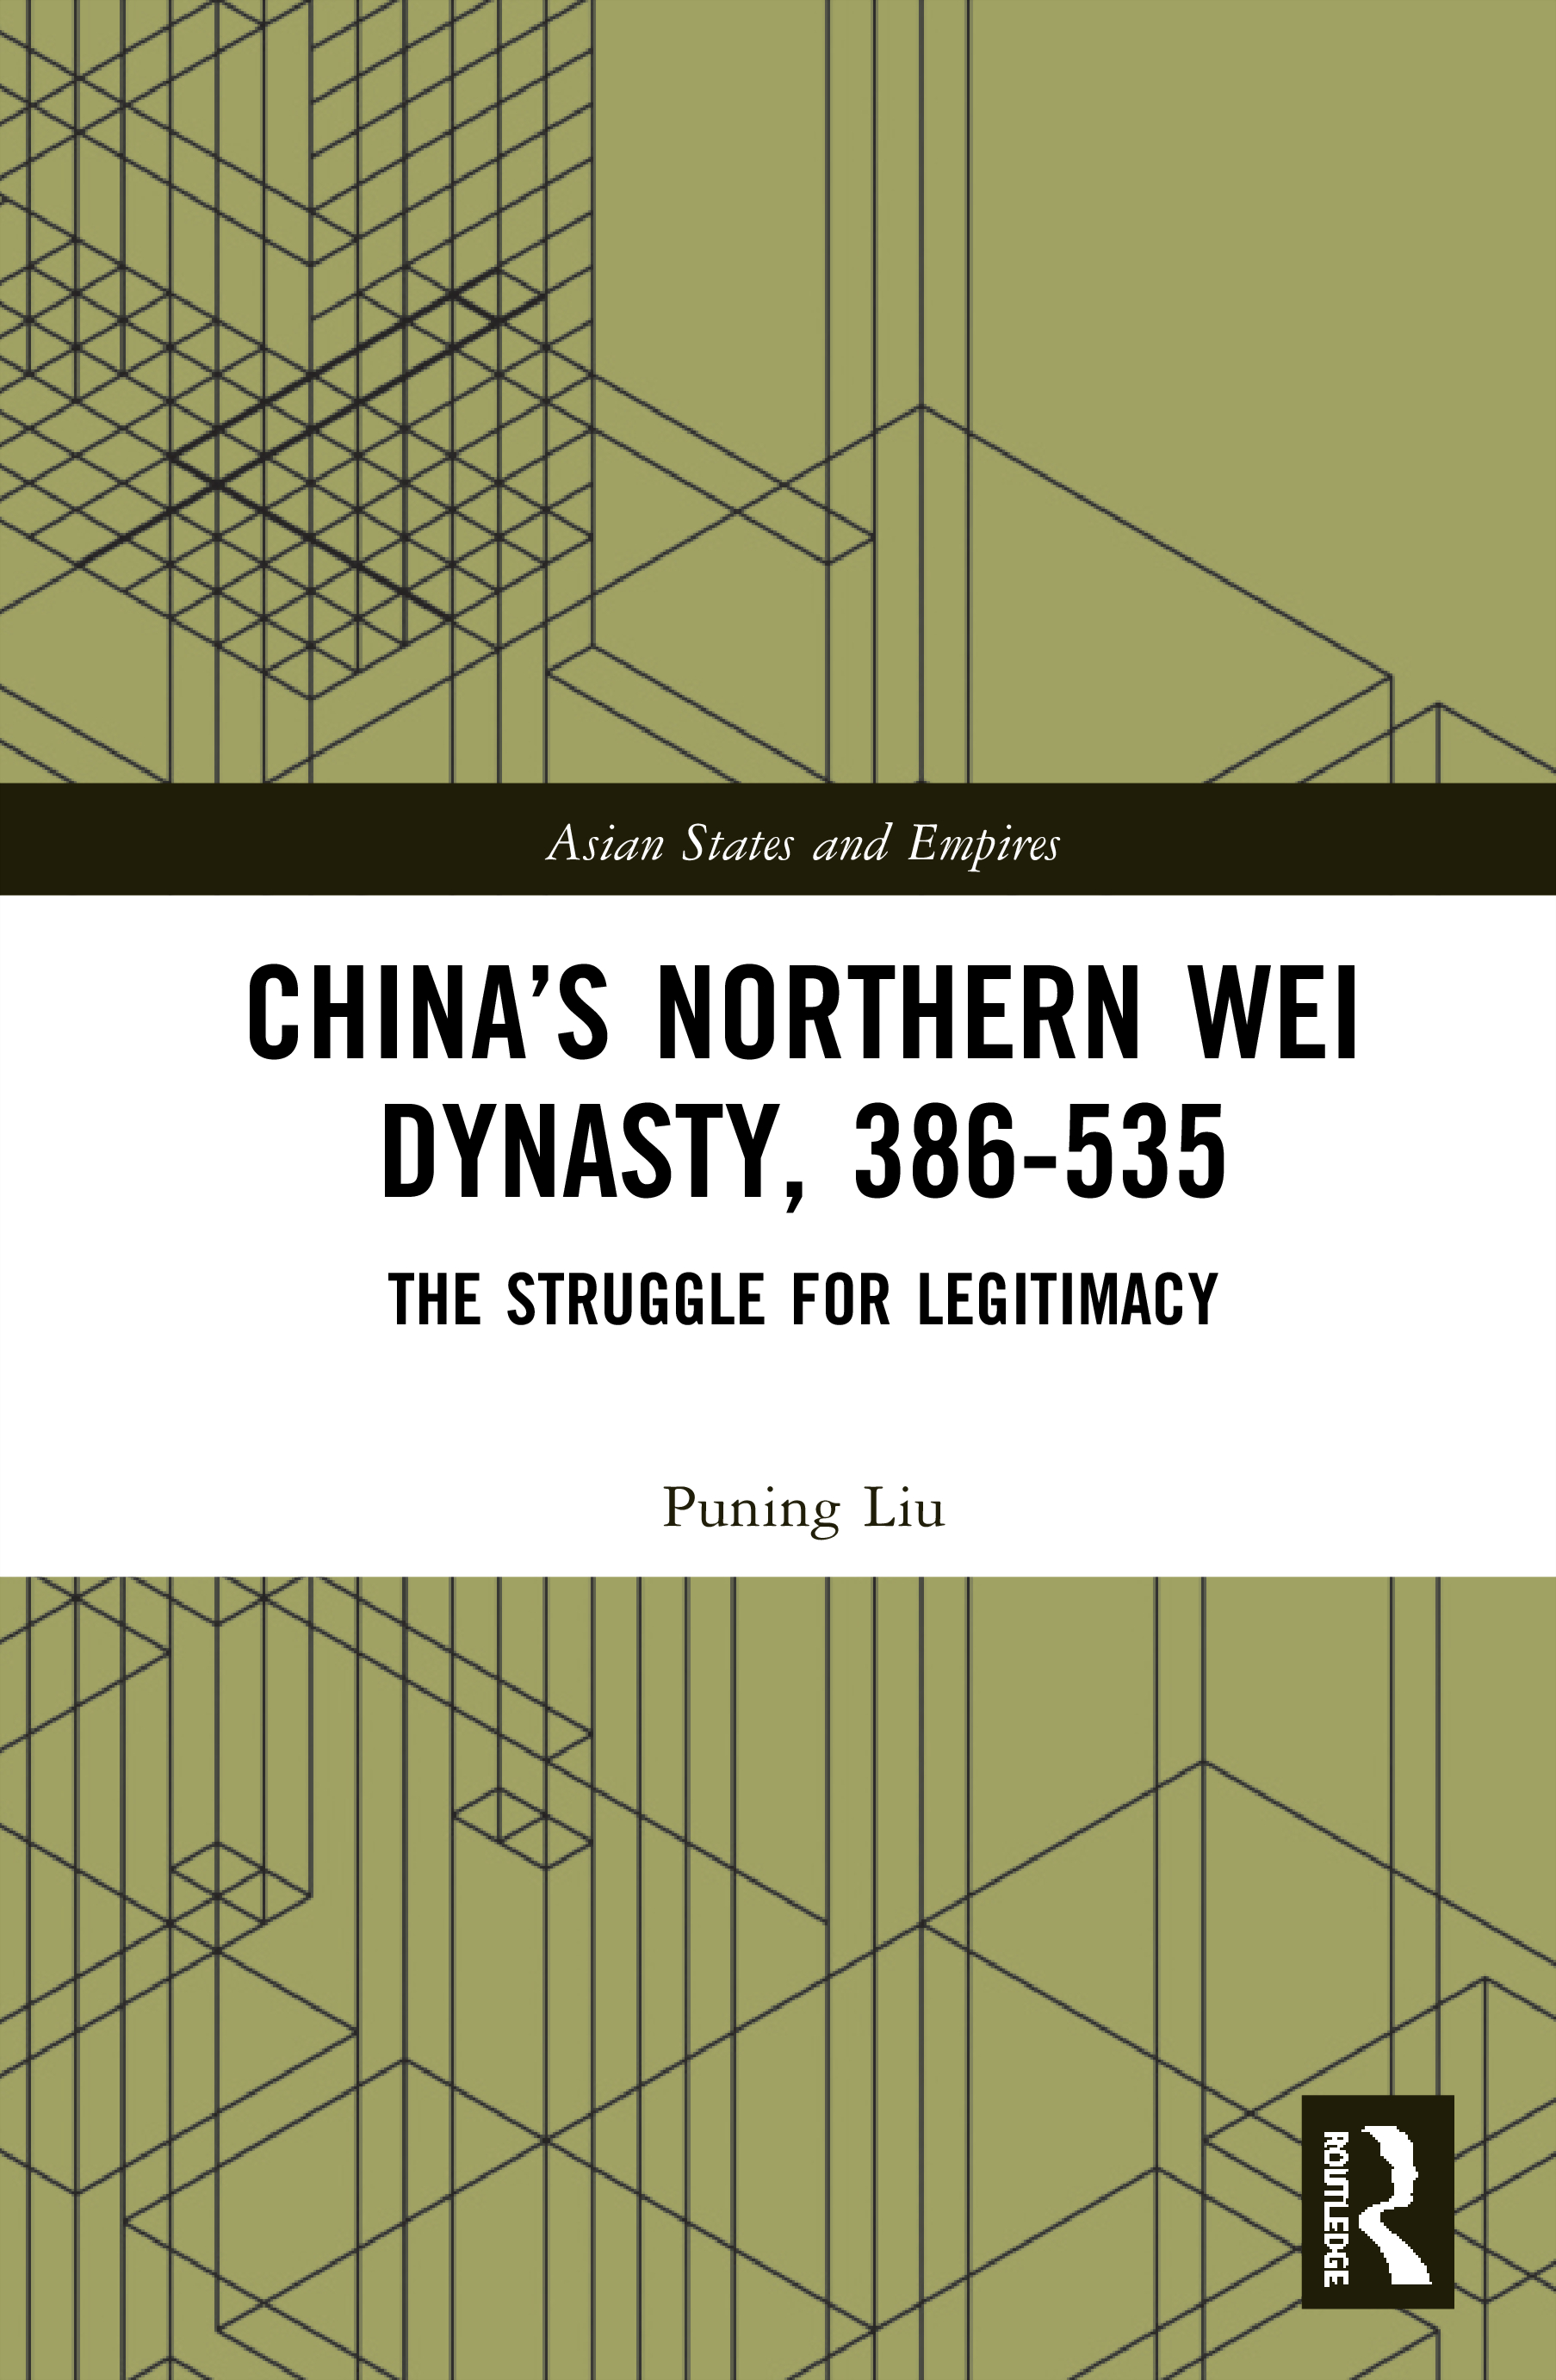 History of the Northern Wei and the Southern dynasties